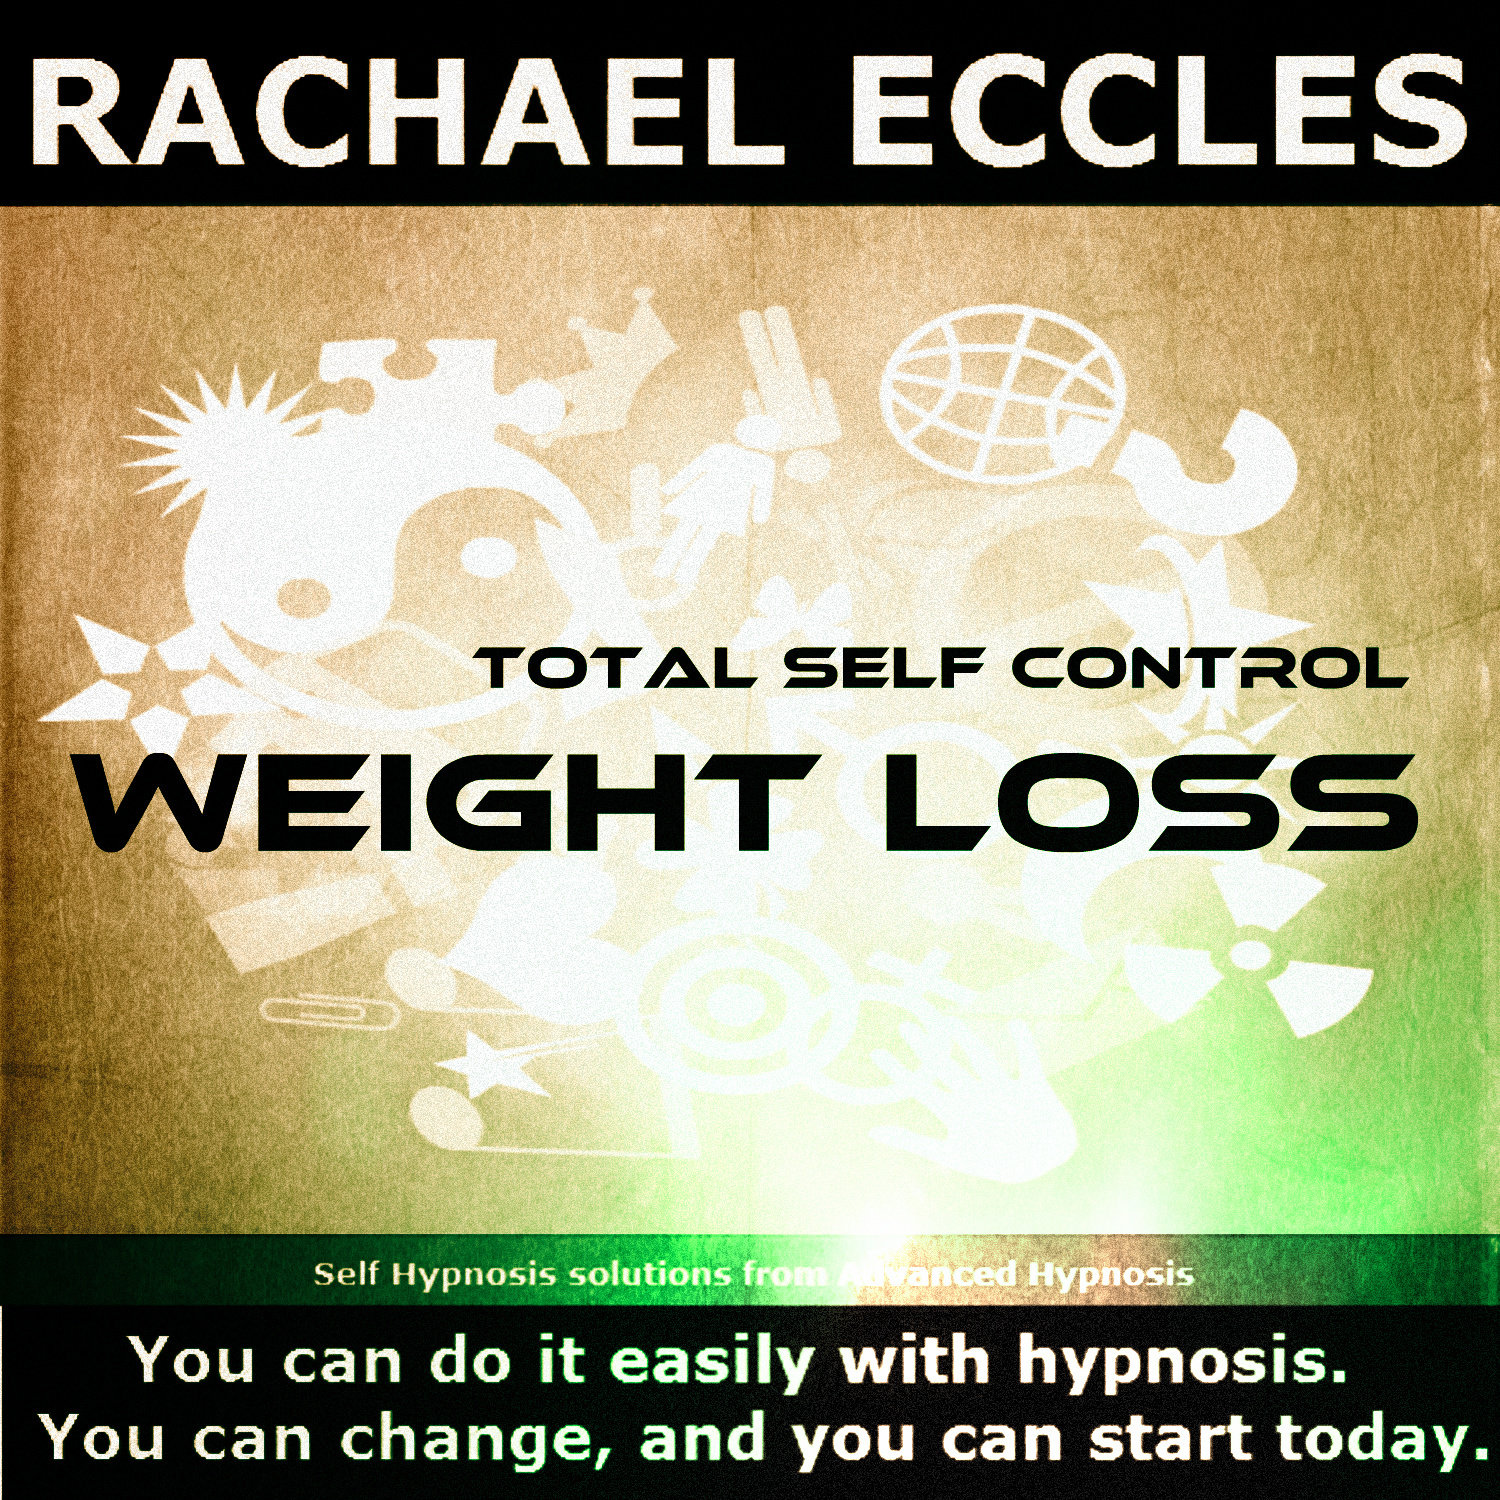 Total Self Control Weight Loss Three Track Self Hypnosis CD